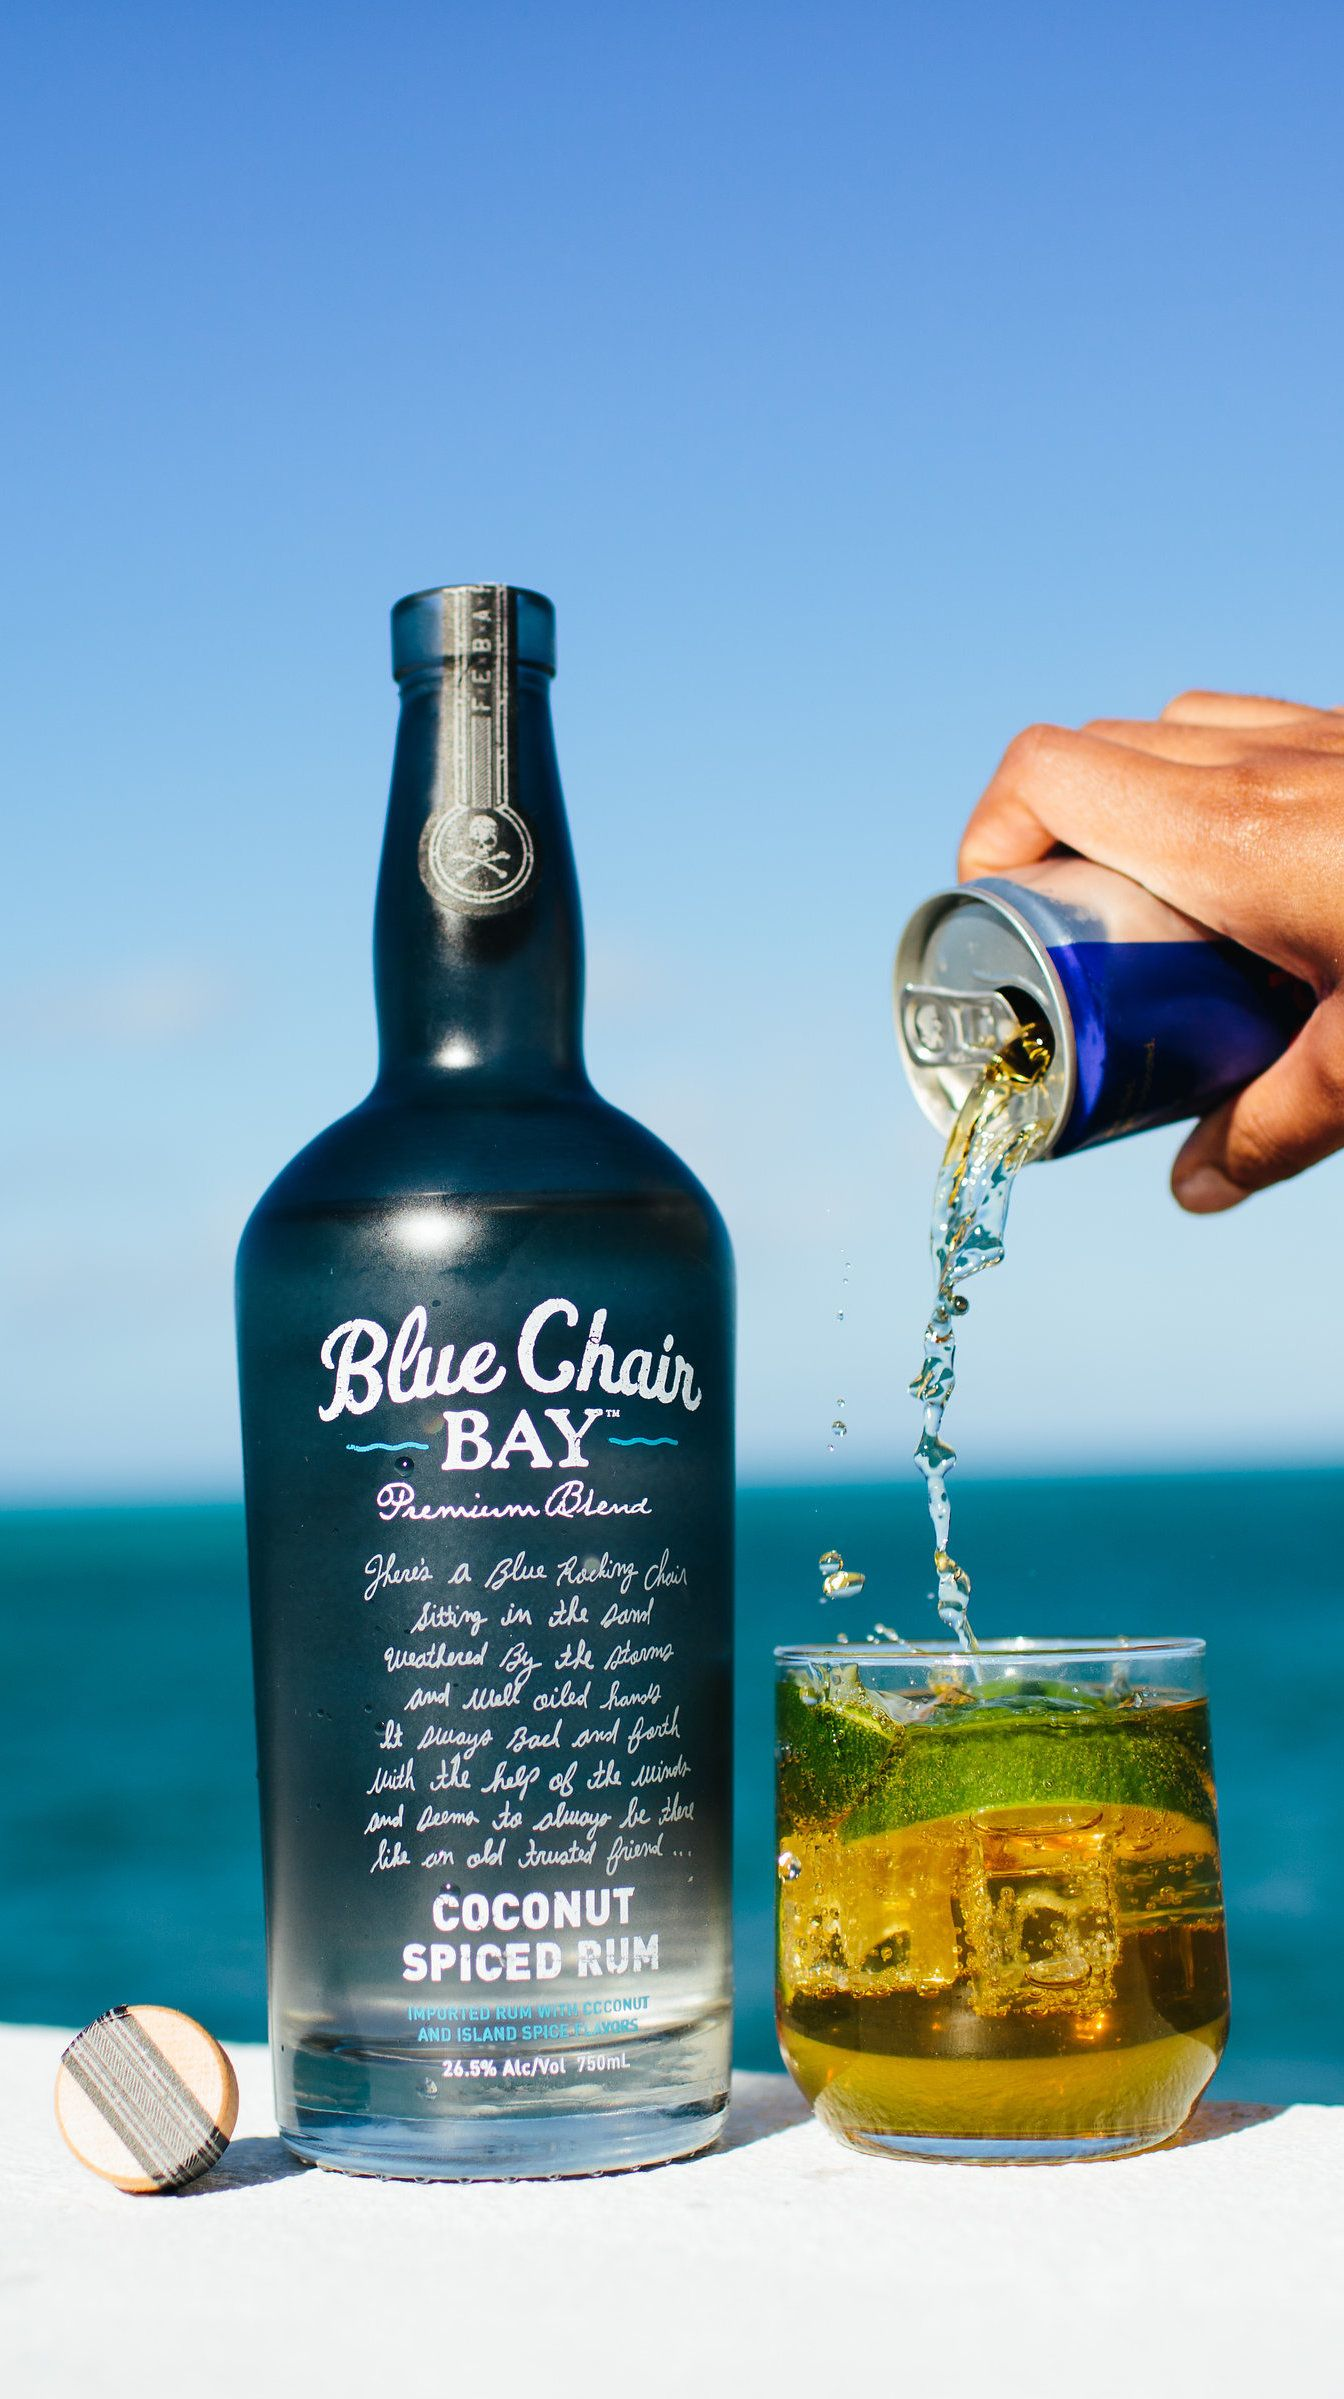 SHOOTING STAR COCKTAIL 1 5 oz Blue Chair Bay Coconut Spiced